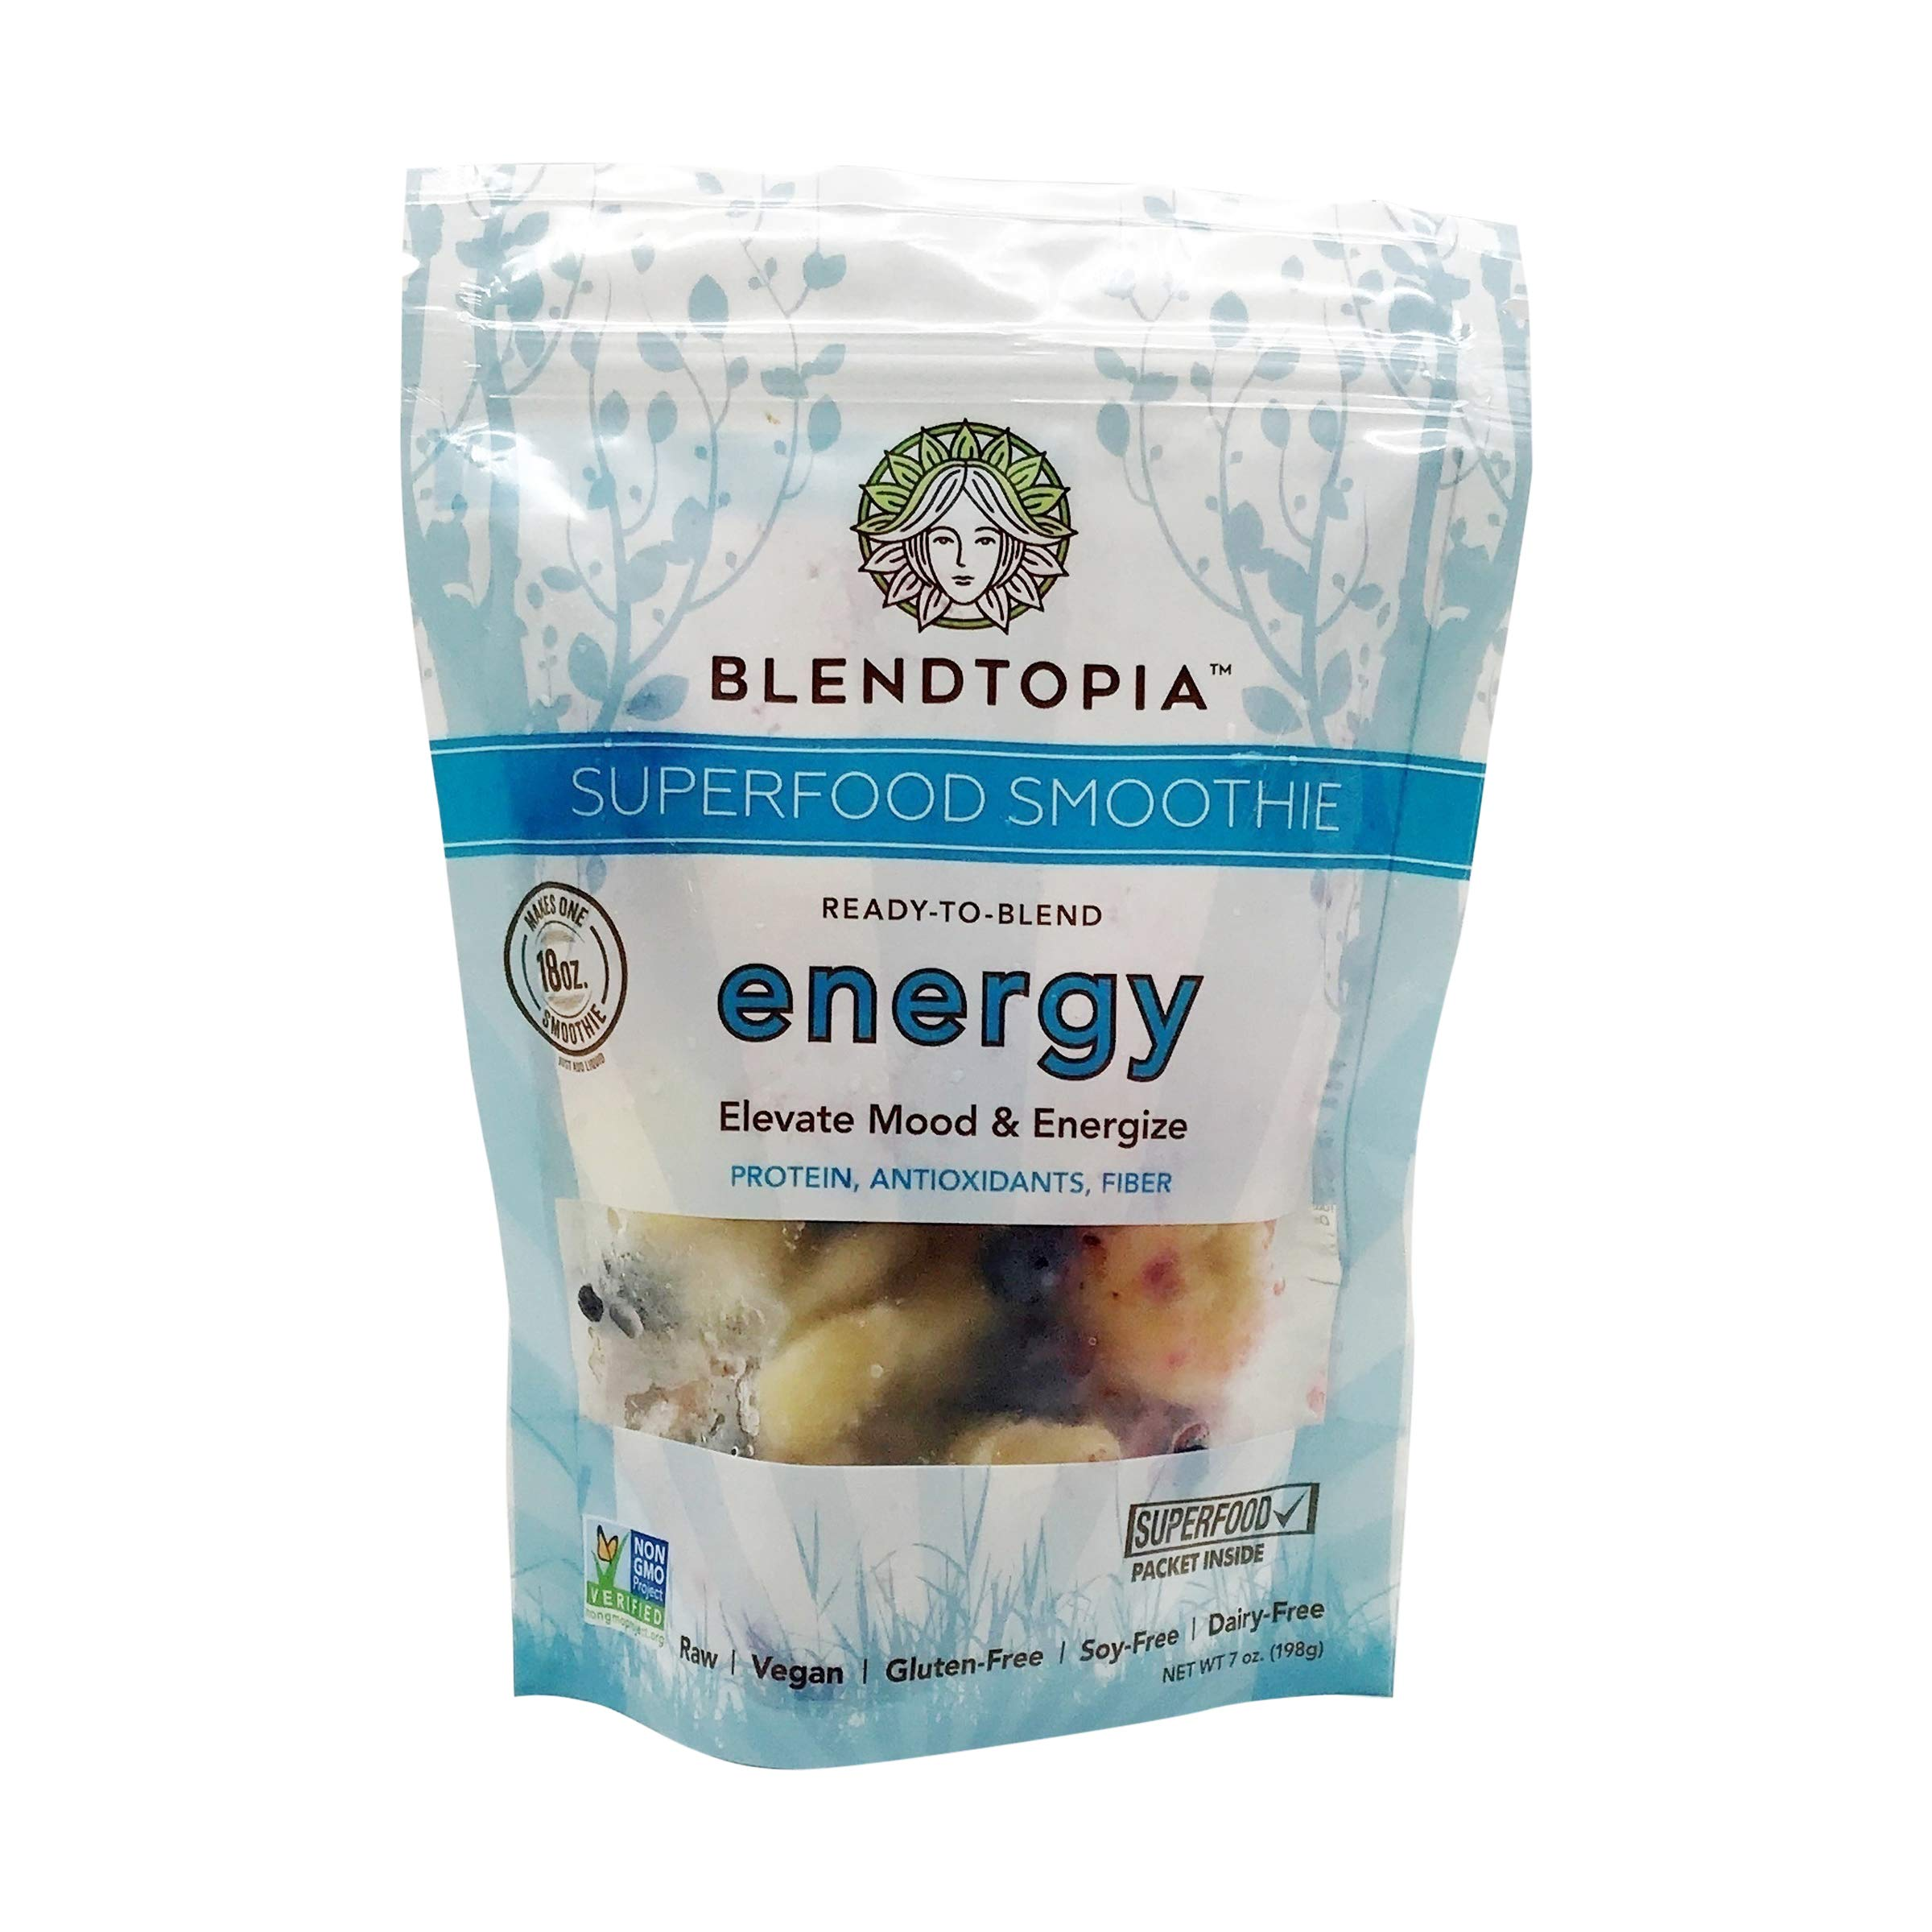 Blendtopia Superfood Smoothie Mix, Energy (4 Pack)